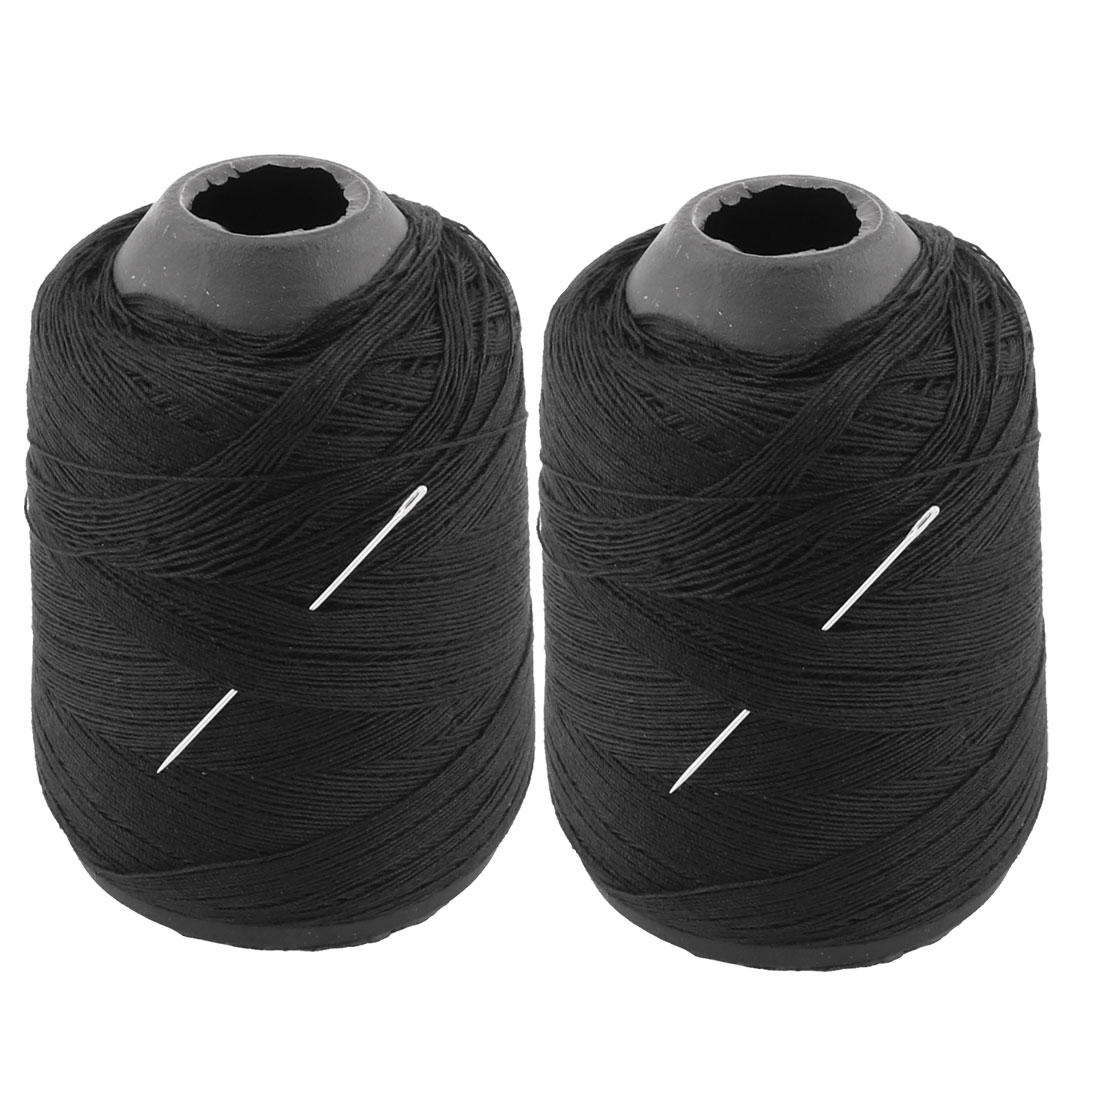 Tailor Craft Needlework Polyester String Line Sewing Thread Spool Reel Black 2pcs